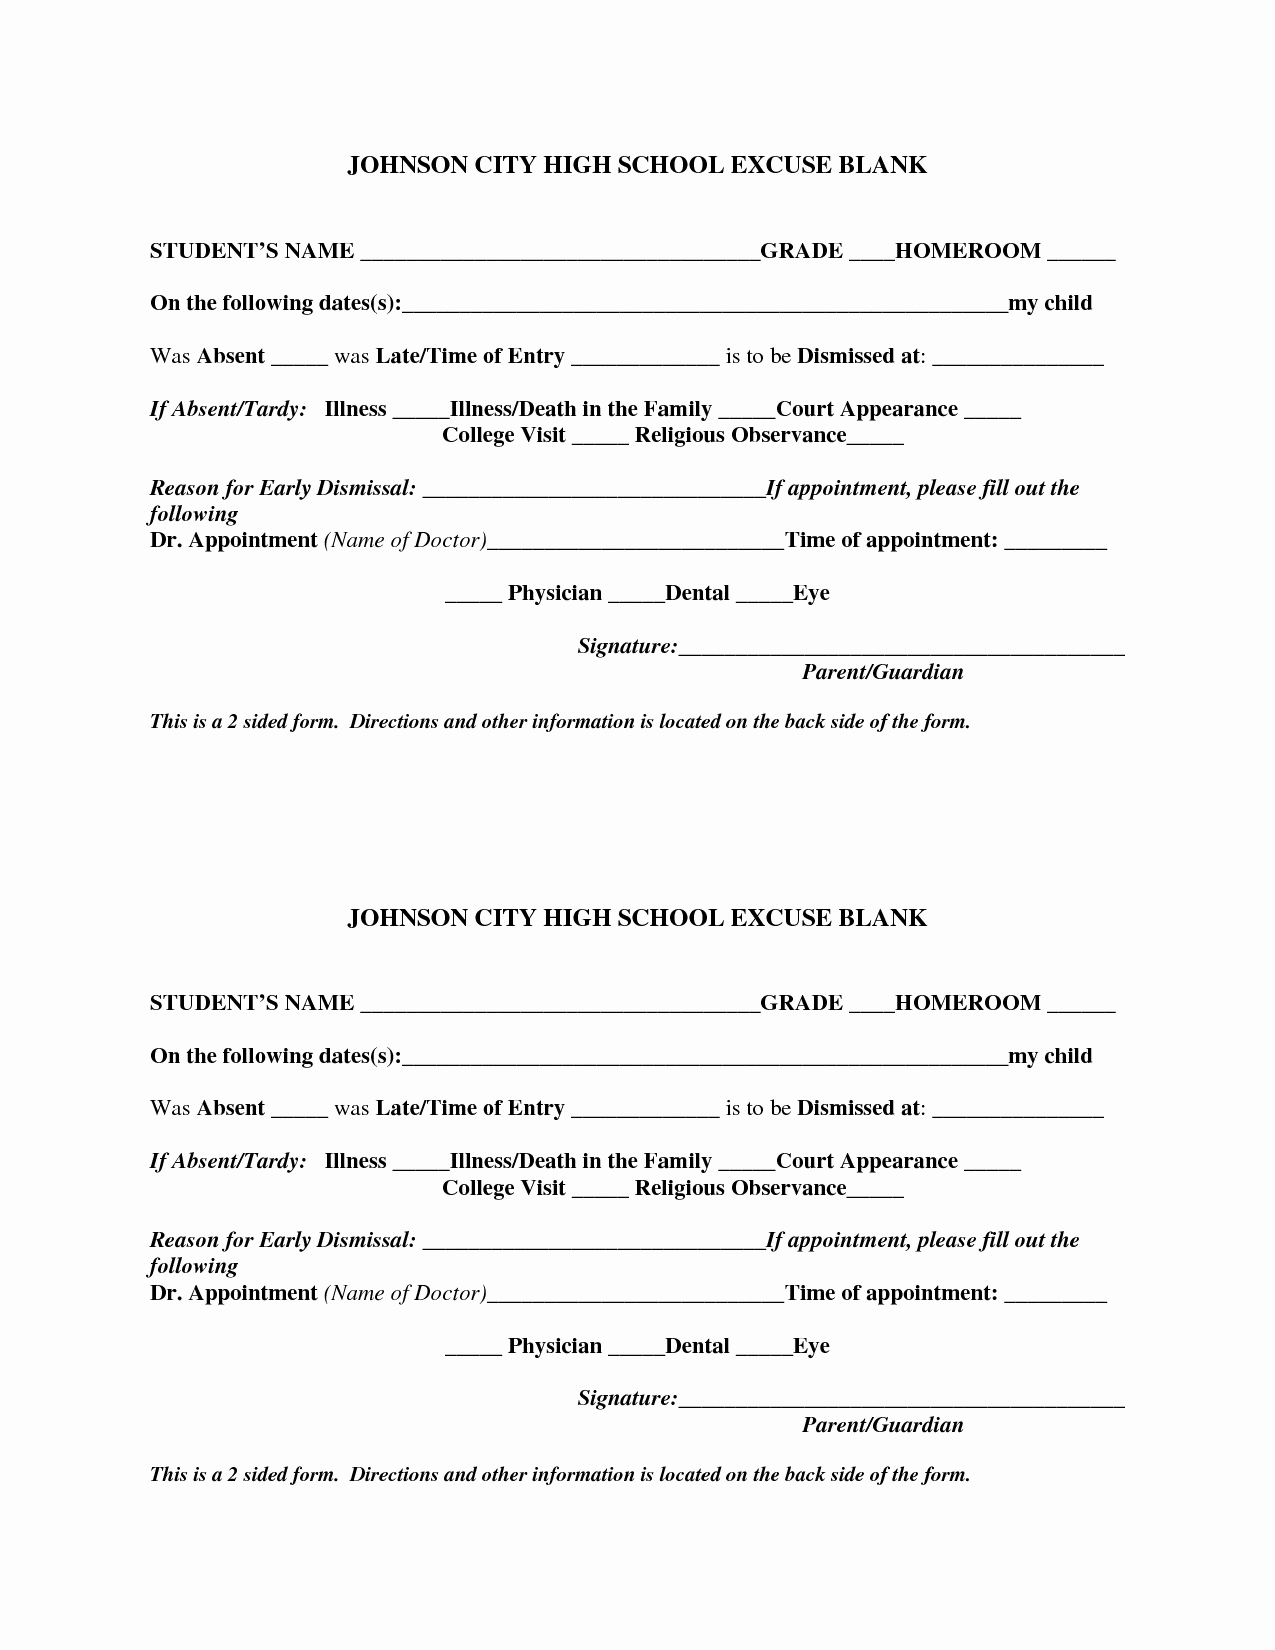 Blank Doctors Excuse form Best Of Template Printable Gallery Category Page 94